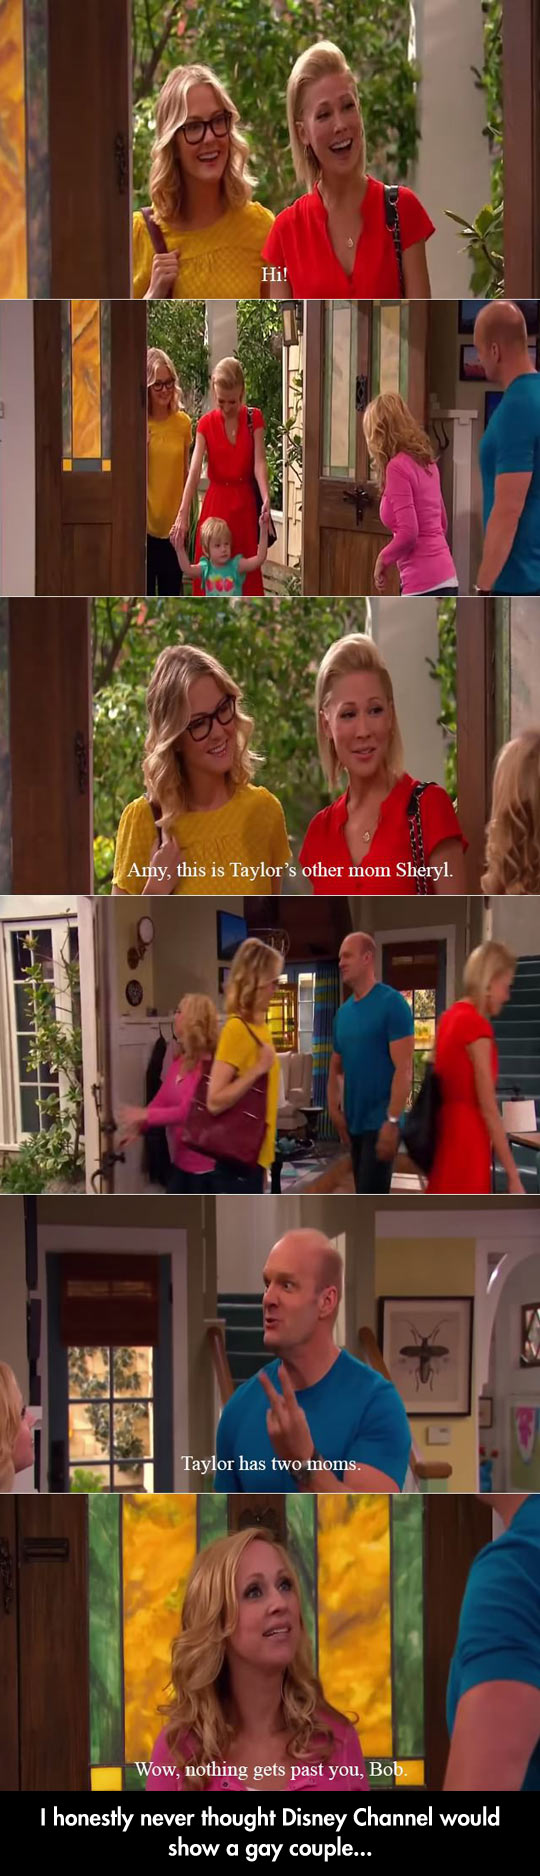 funny-Disney-Channel-two-mothers